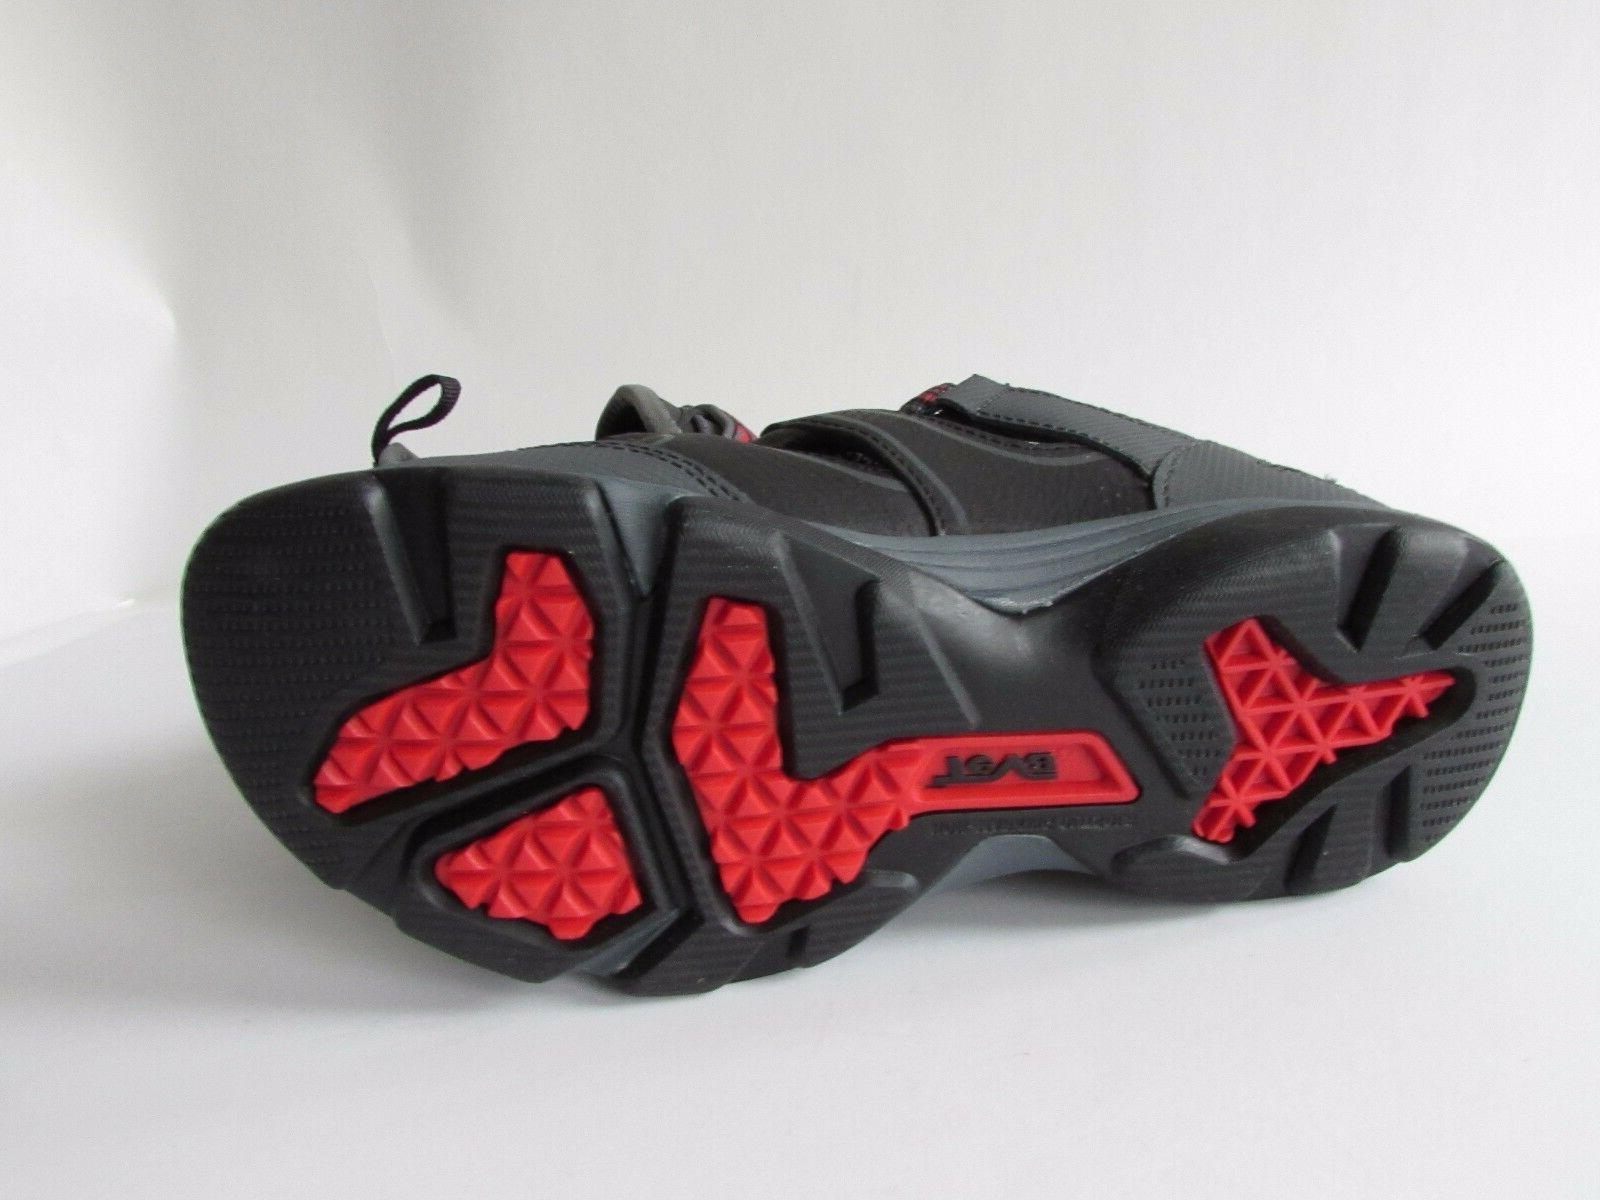 TEVA Sandals Water size